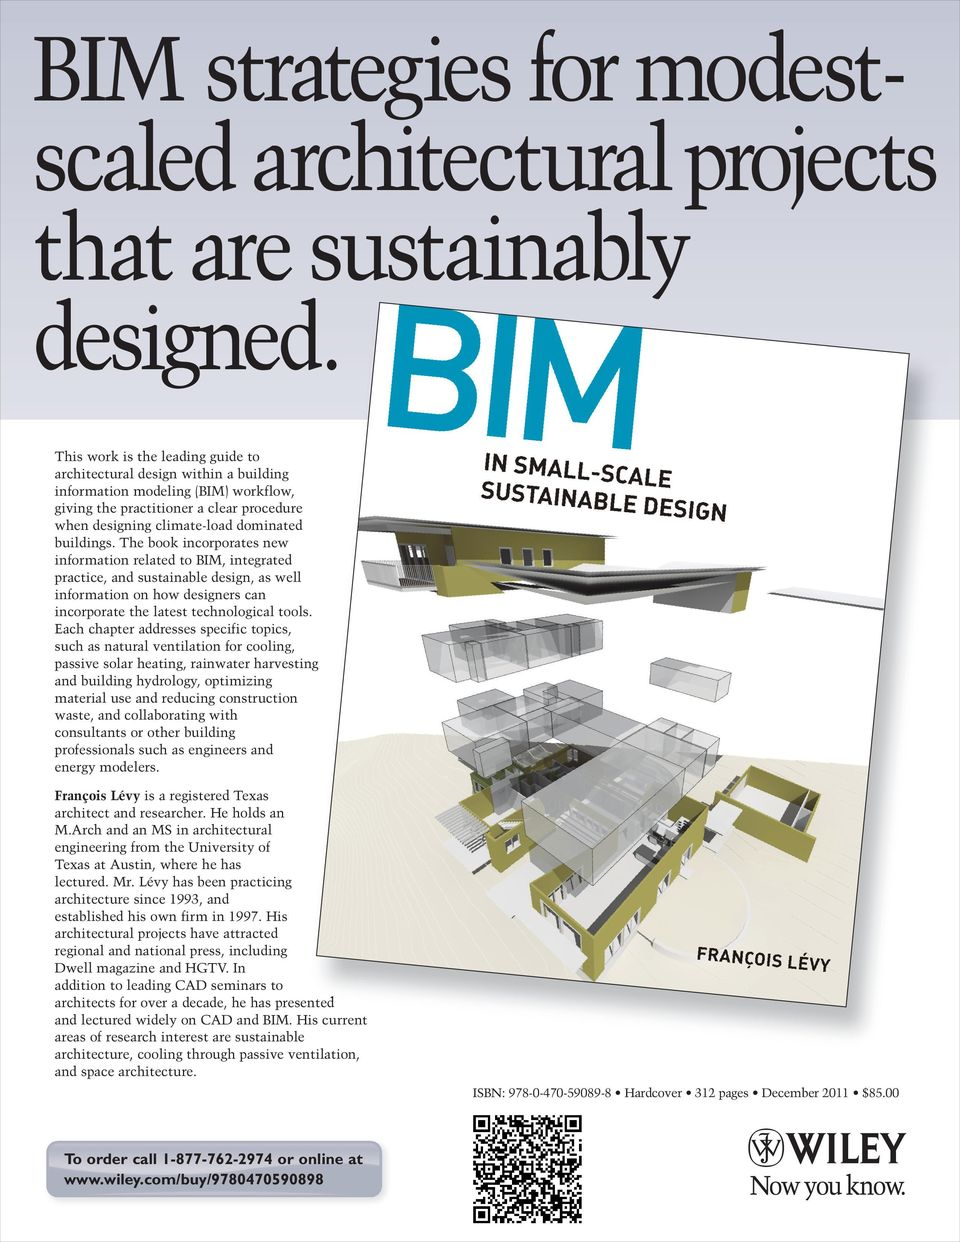 The book incorporates new information related to BIM, integrated practice, and sustainable design, as well information on how designers can incorporate the latest technological tools.